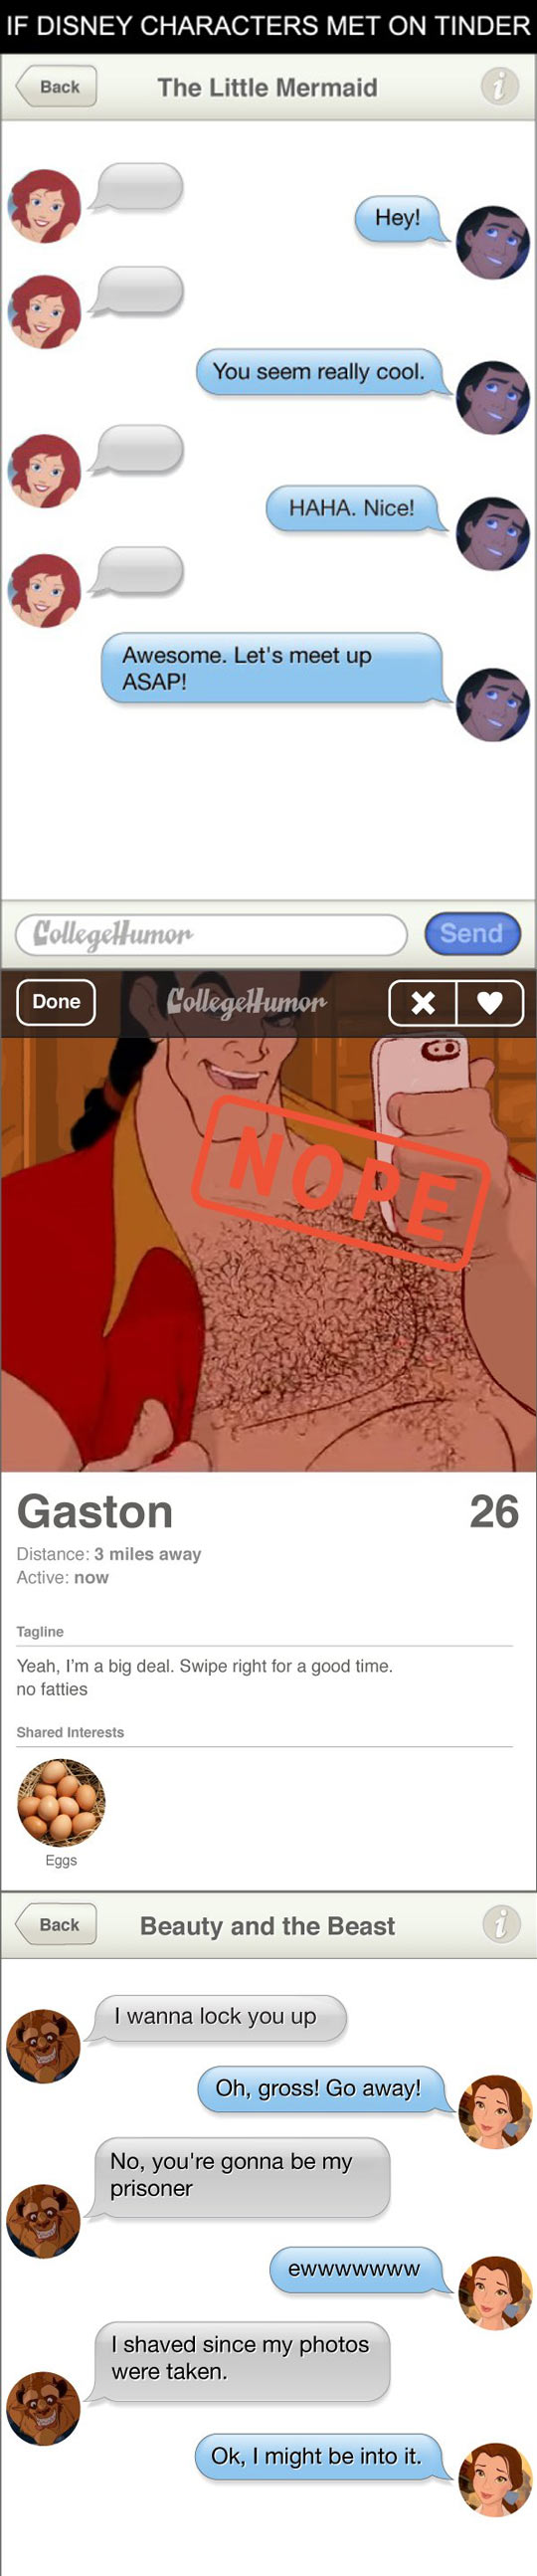 funny-Disney-characters-Tinder-Aladdin